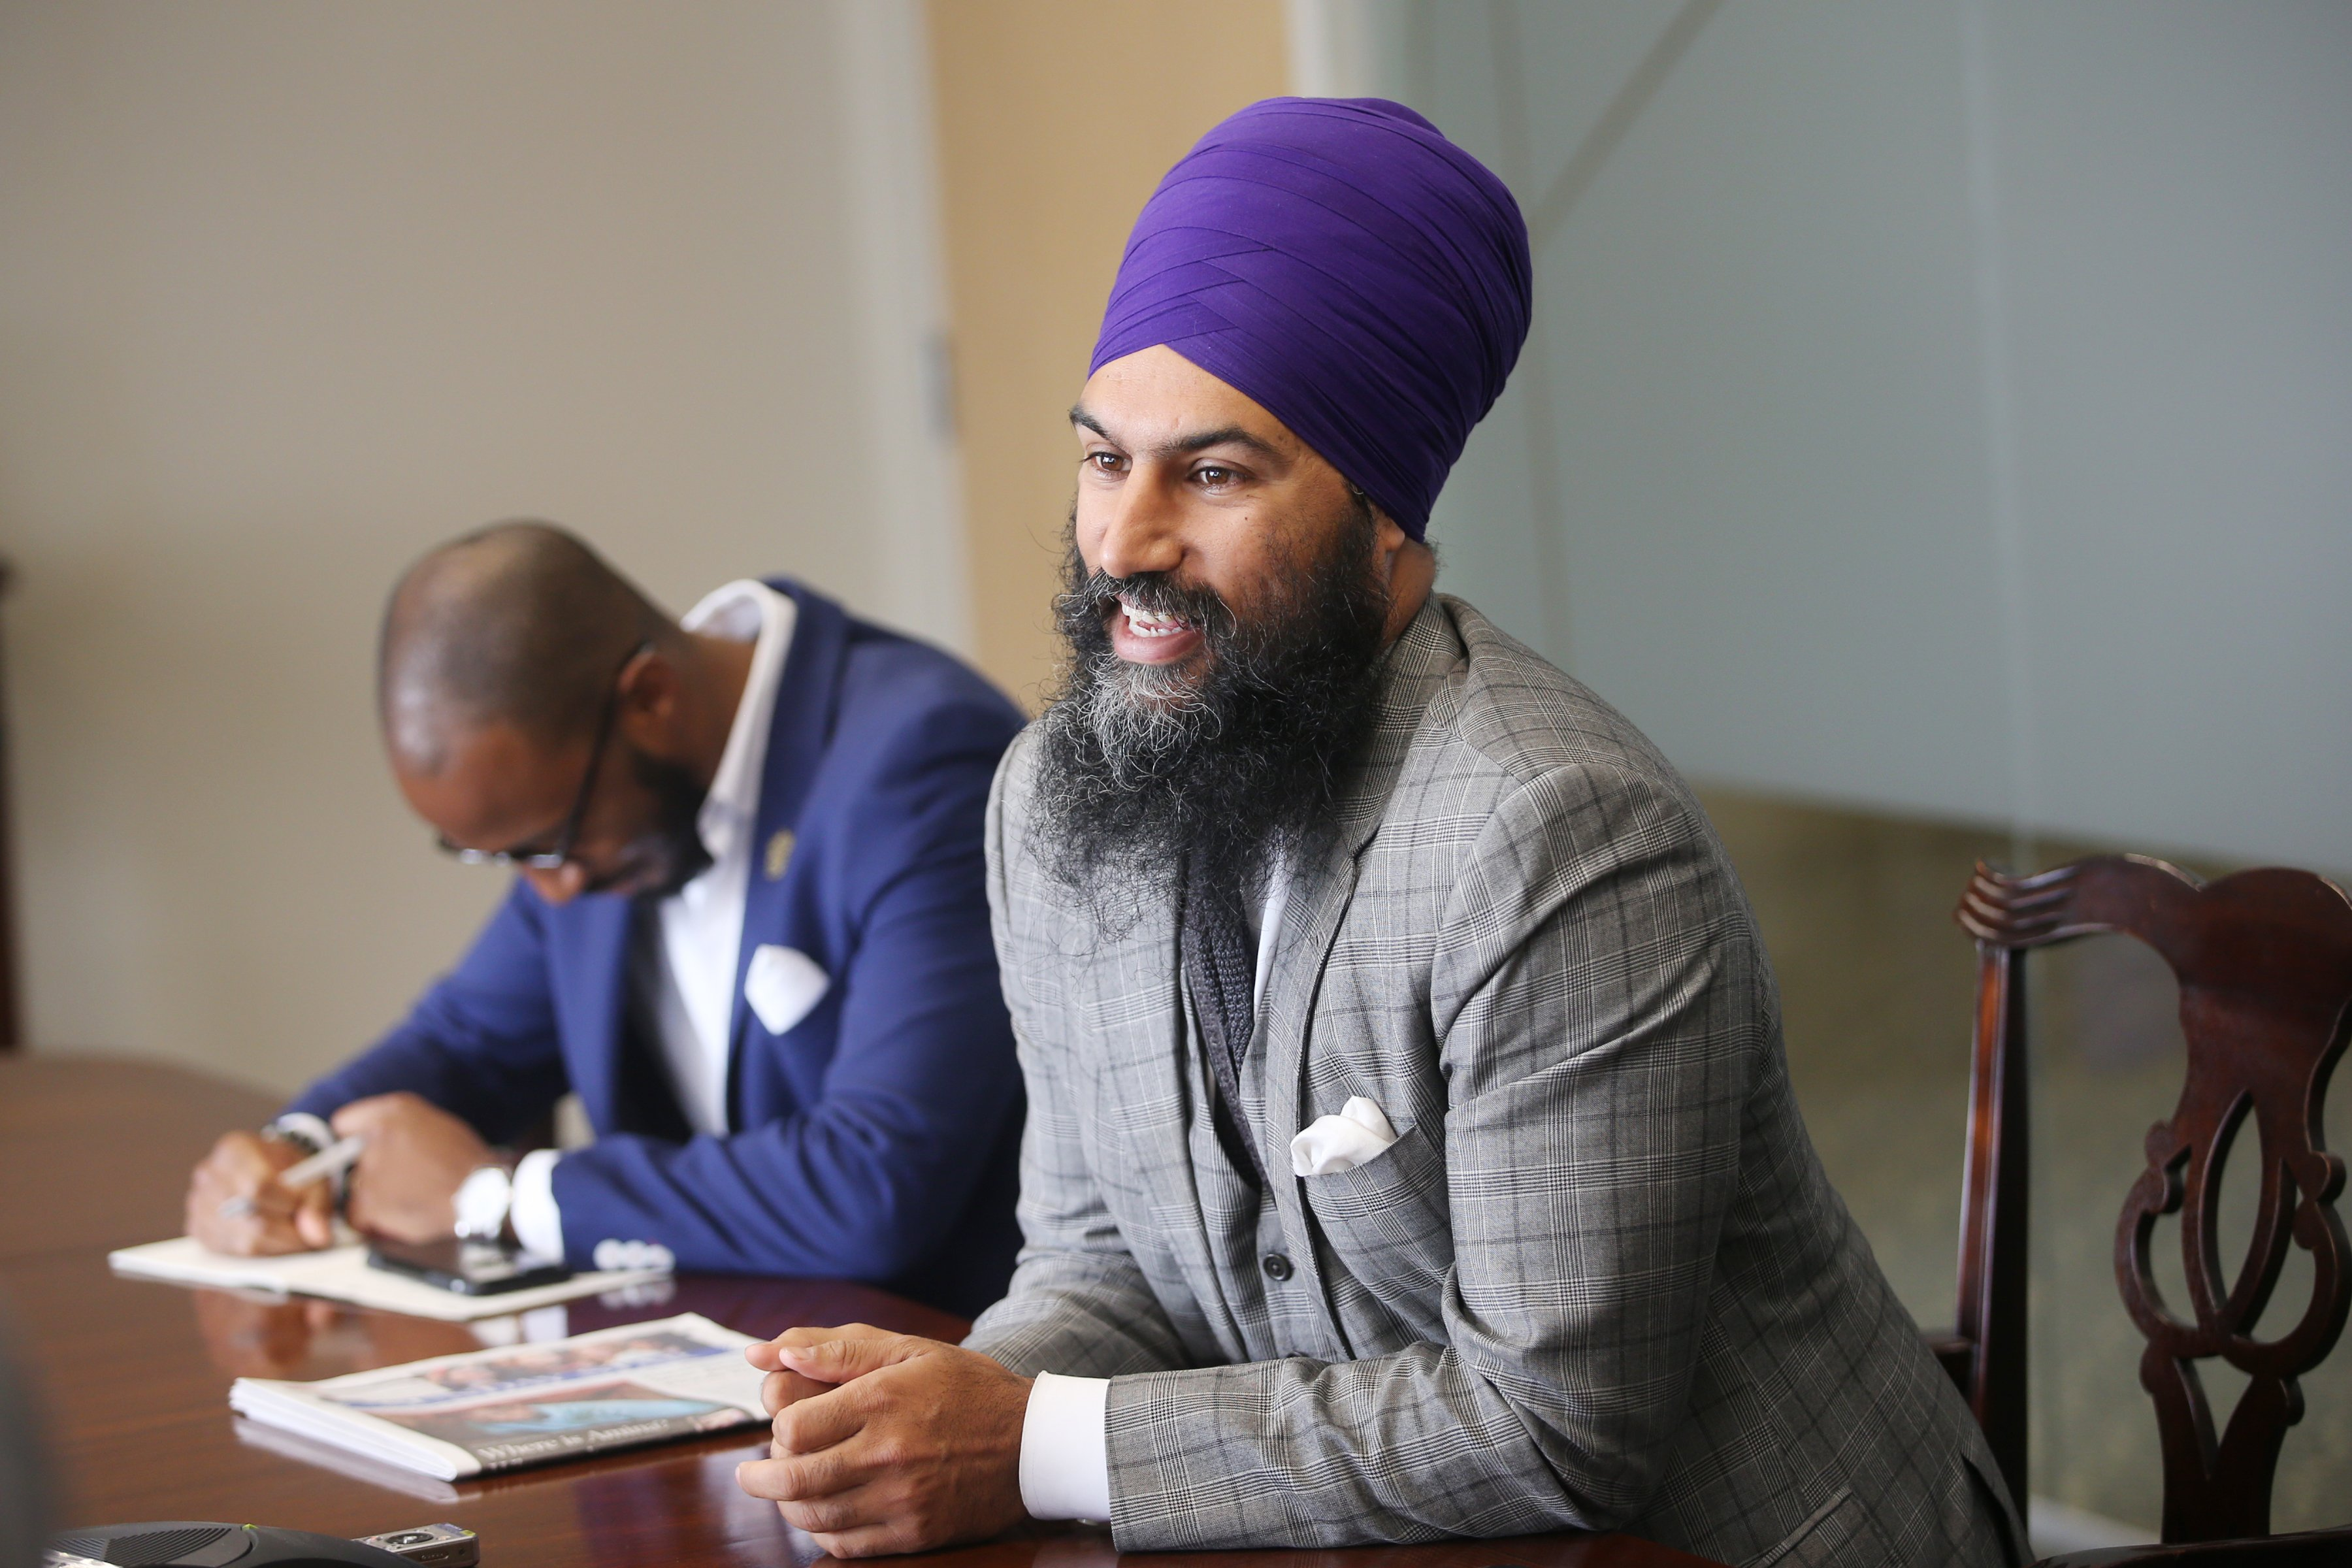 NDP leadership candidate Jagmeet Singh discusses his platform and campaign.